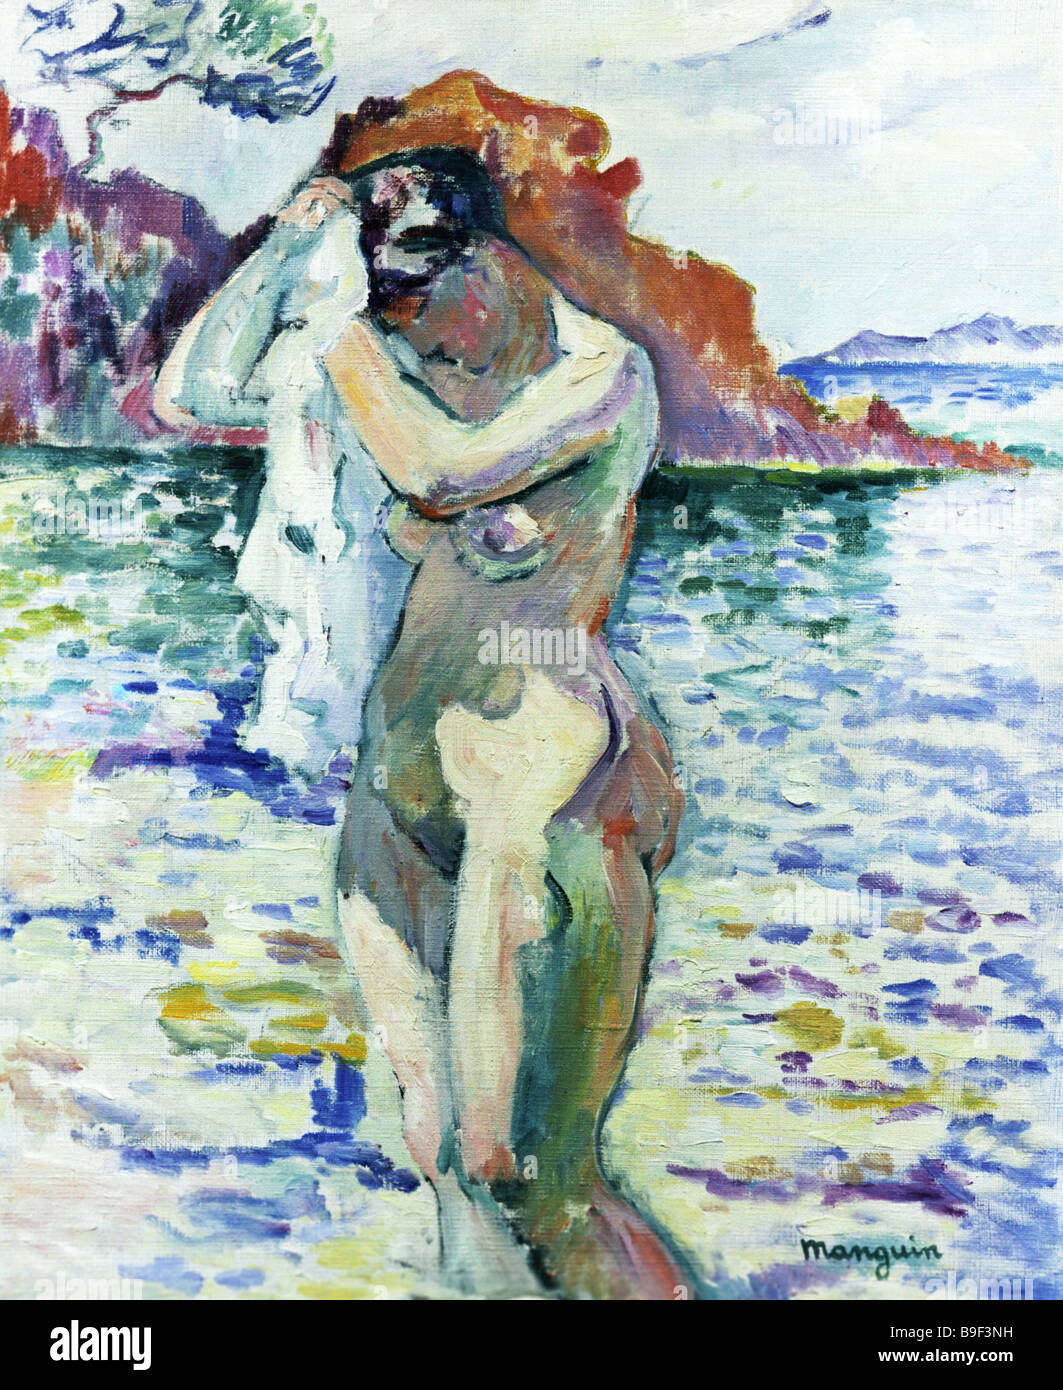 A Bather by Henri Manguin 1906 Reproduction Collection of the State Pushkin Museum of Fine Arts in Moscow - Stock Image